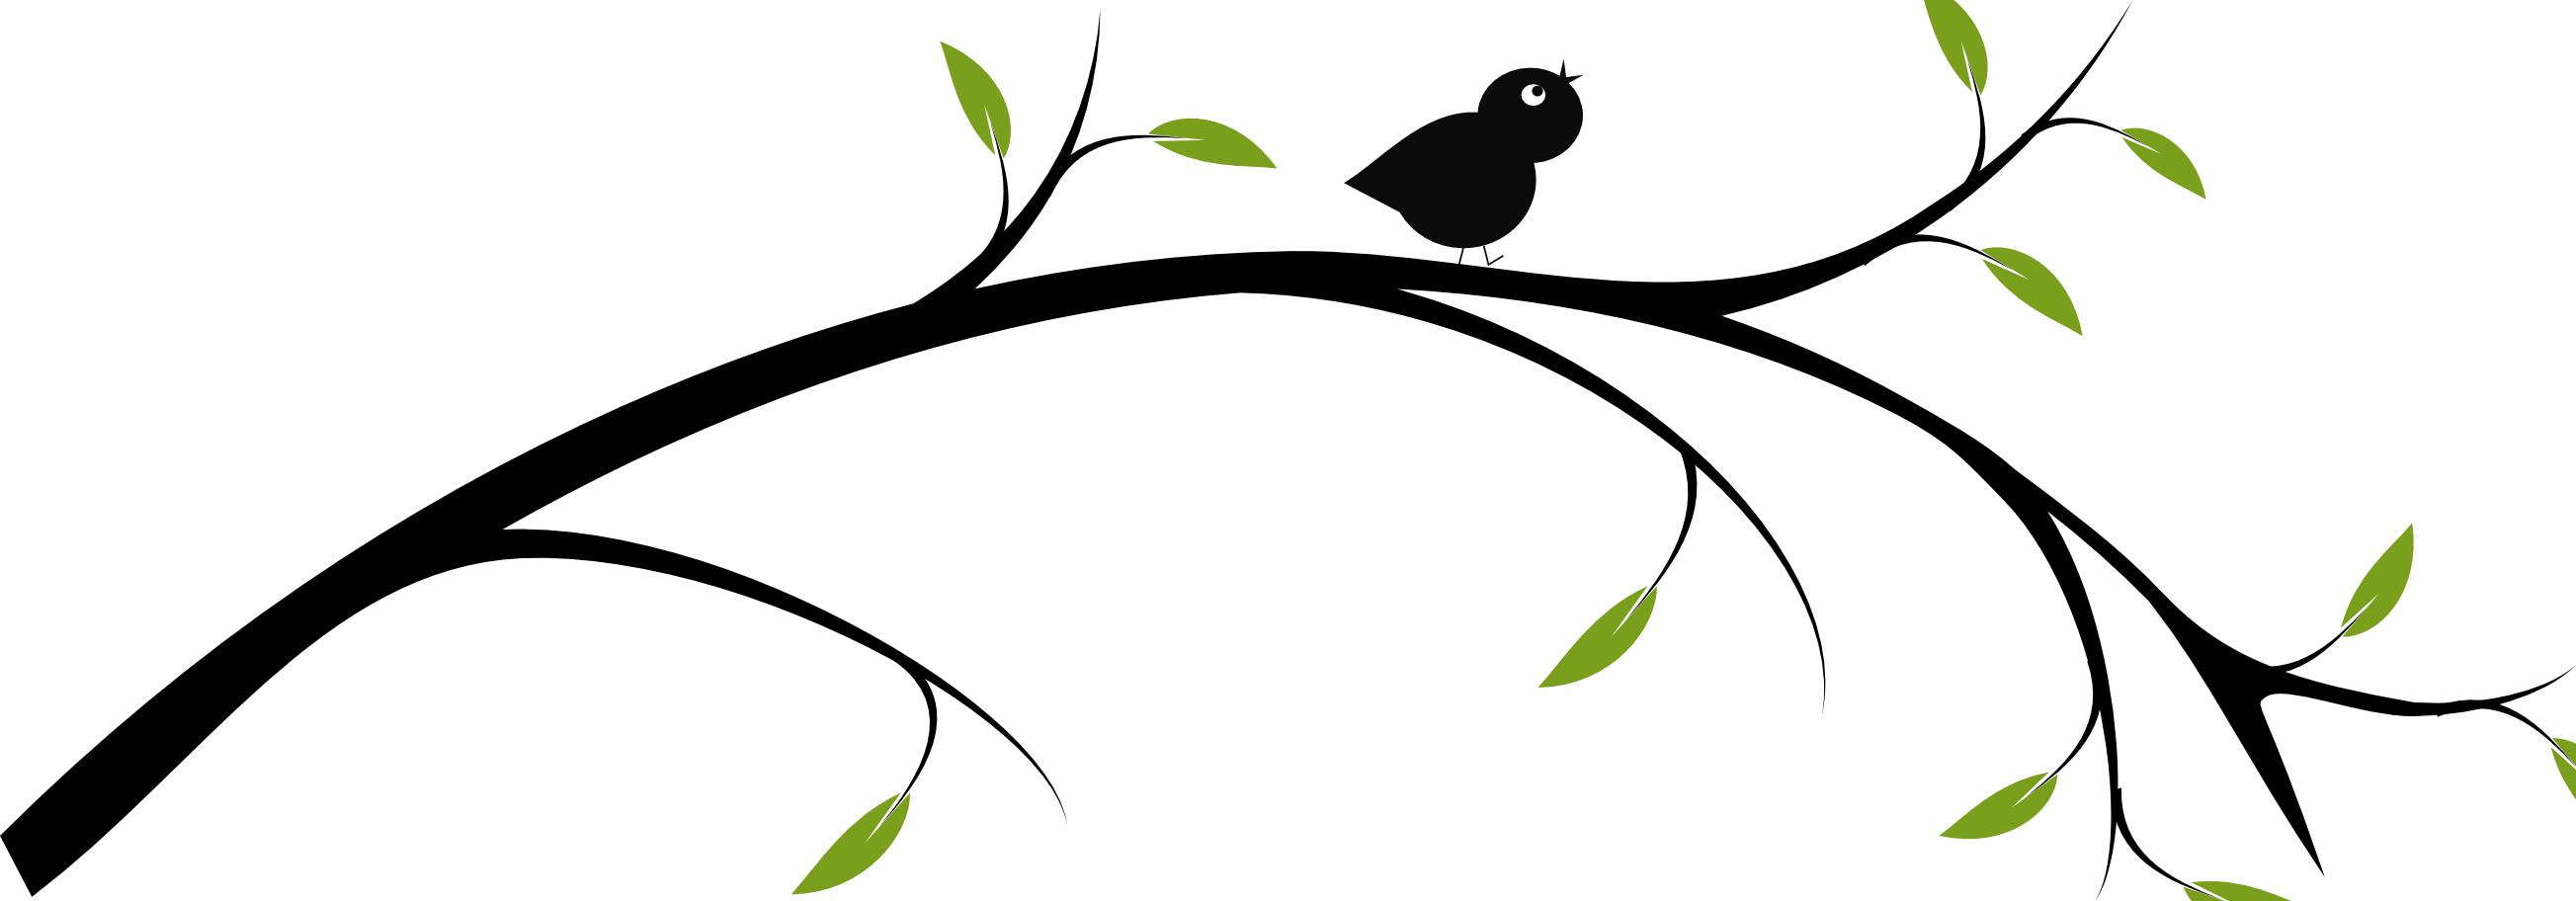 Inkscape Tutorial How To Draw A Tree Branch